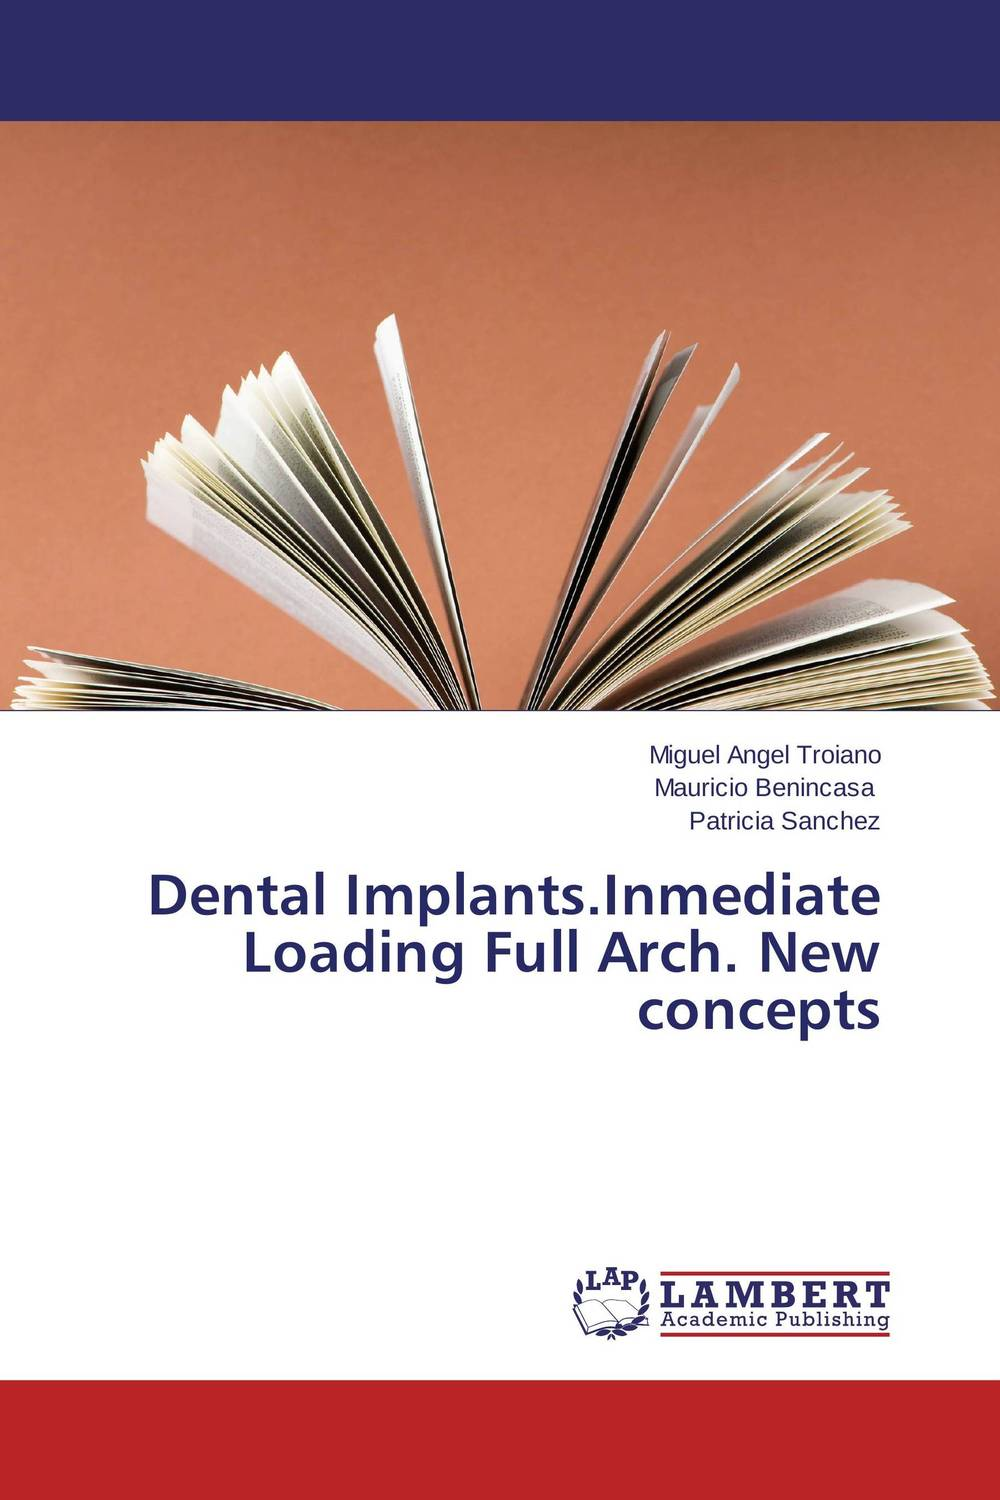 Dental Implants.Inmediate Loading Full Arch. New concepts